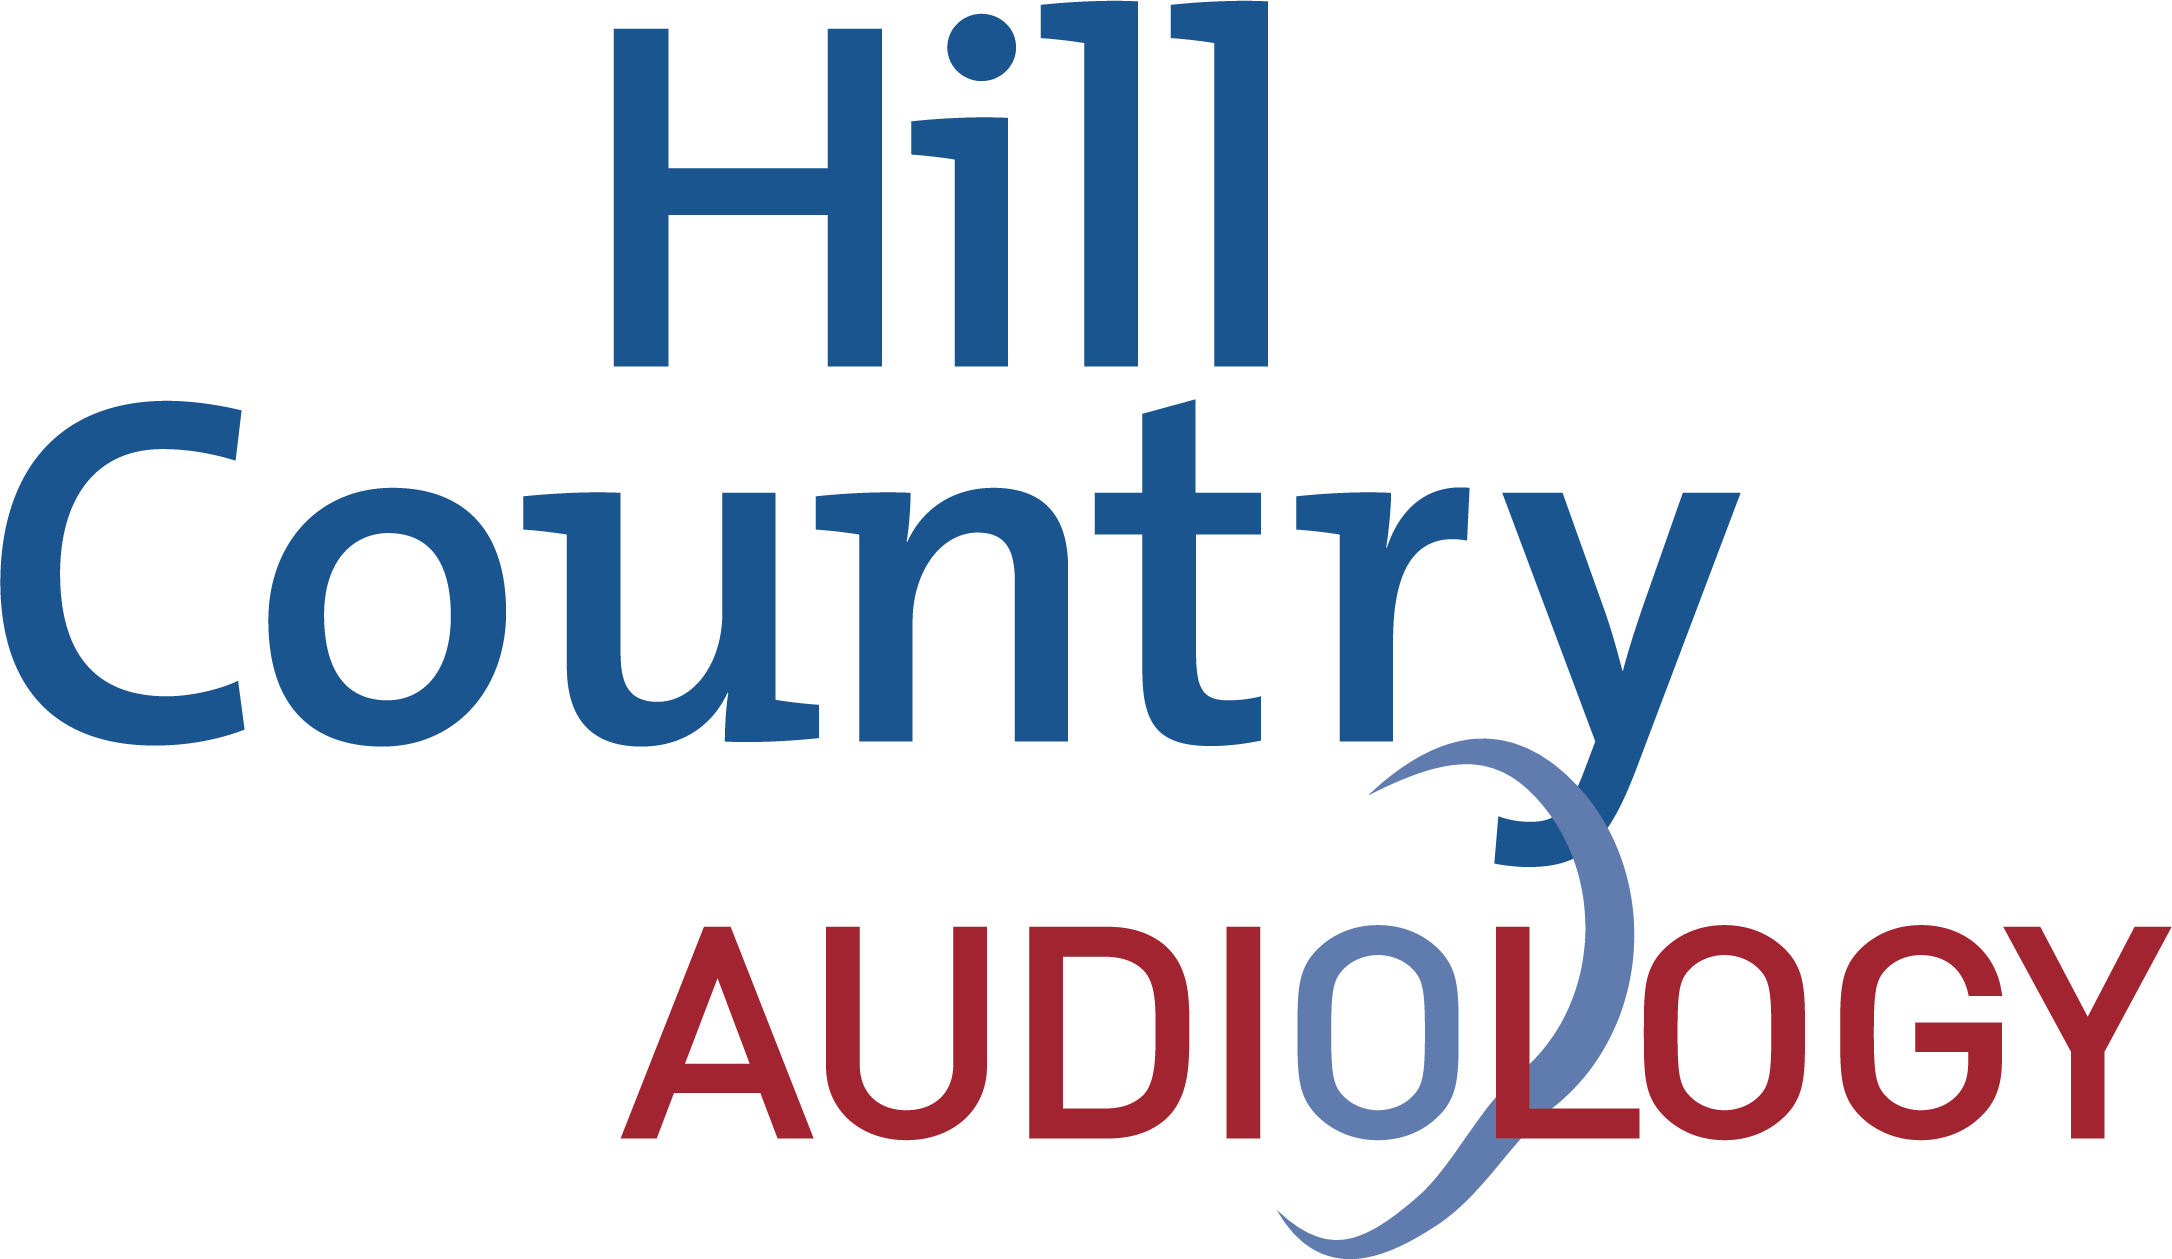 Hill Country Audiology - Georgetown